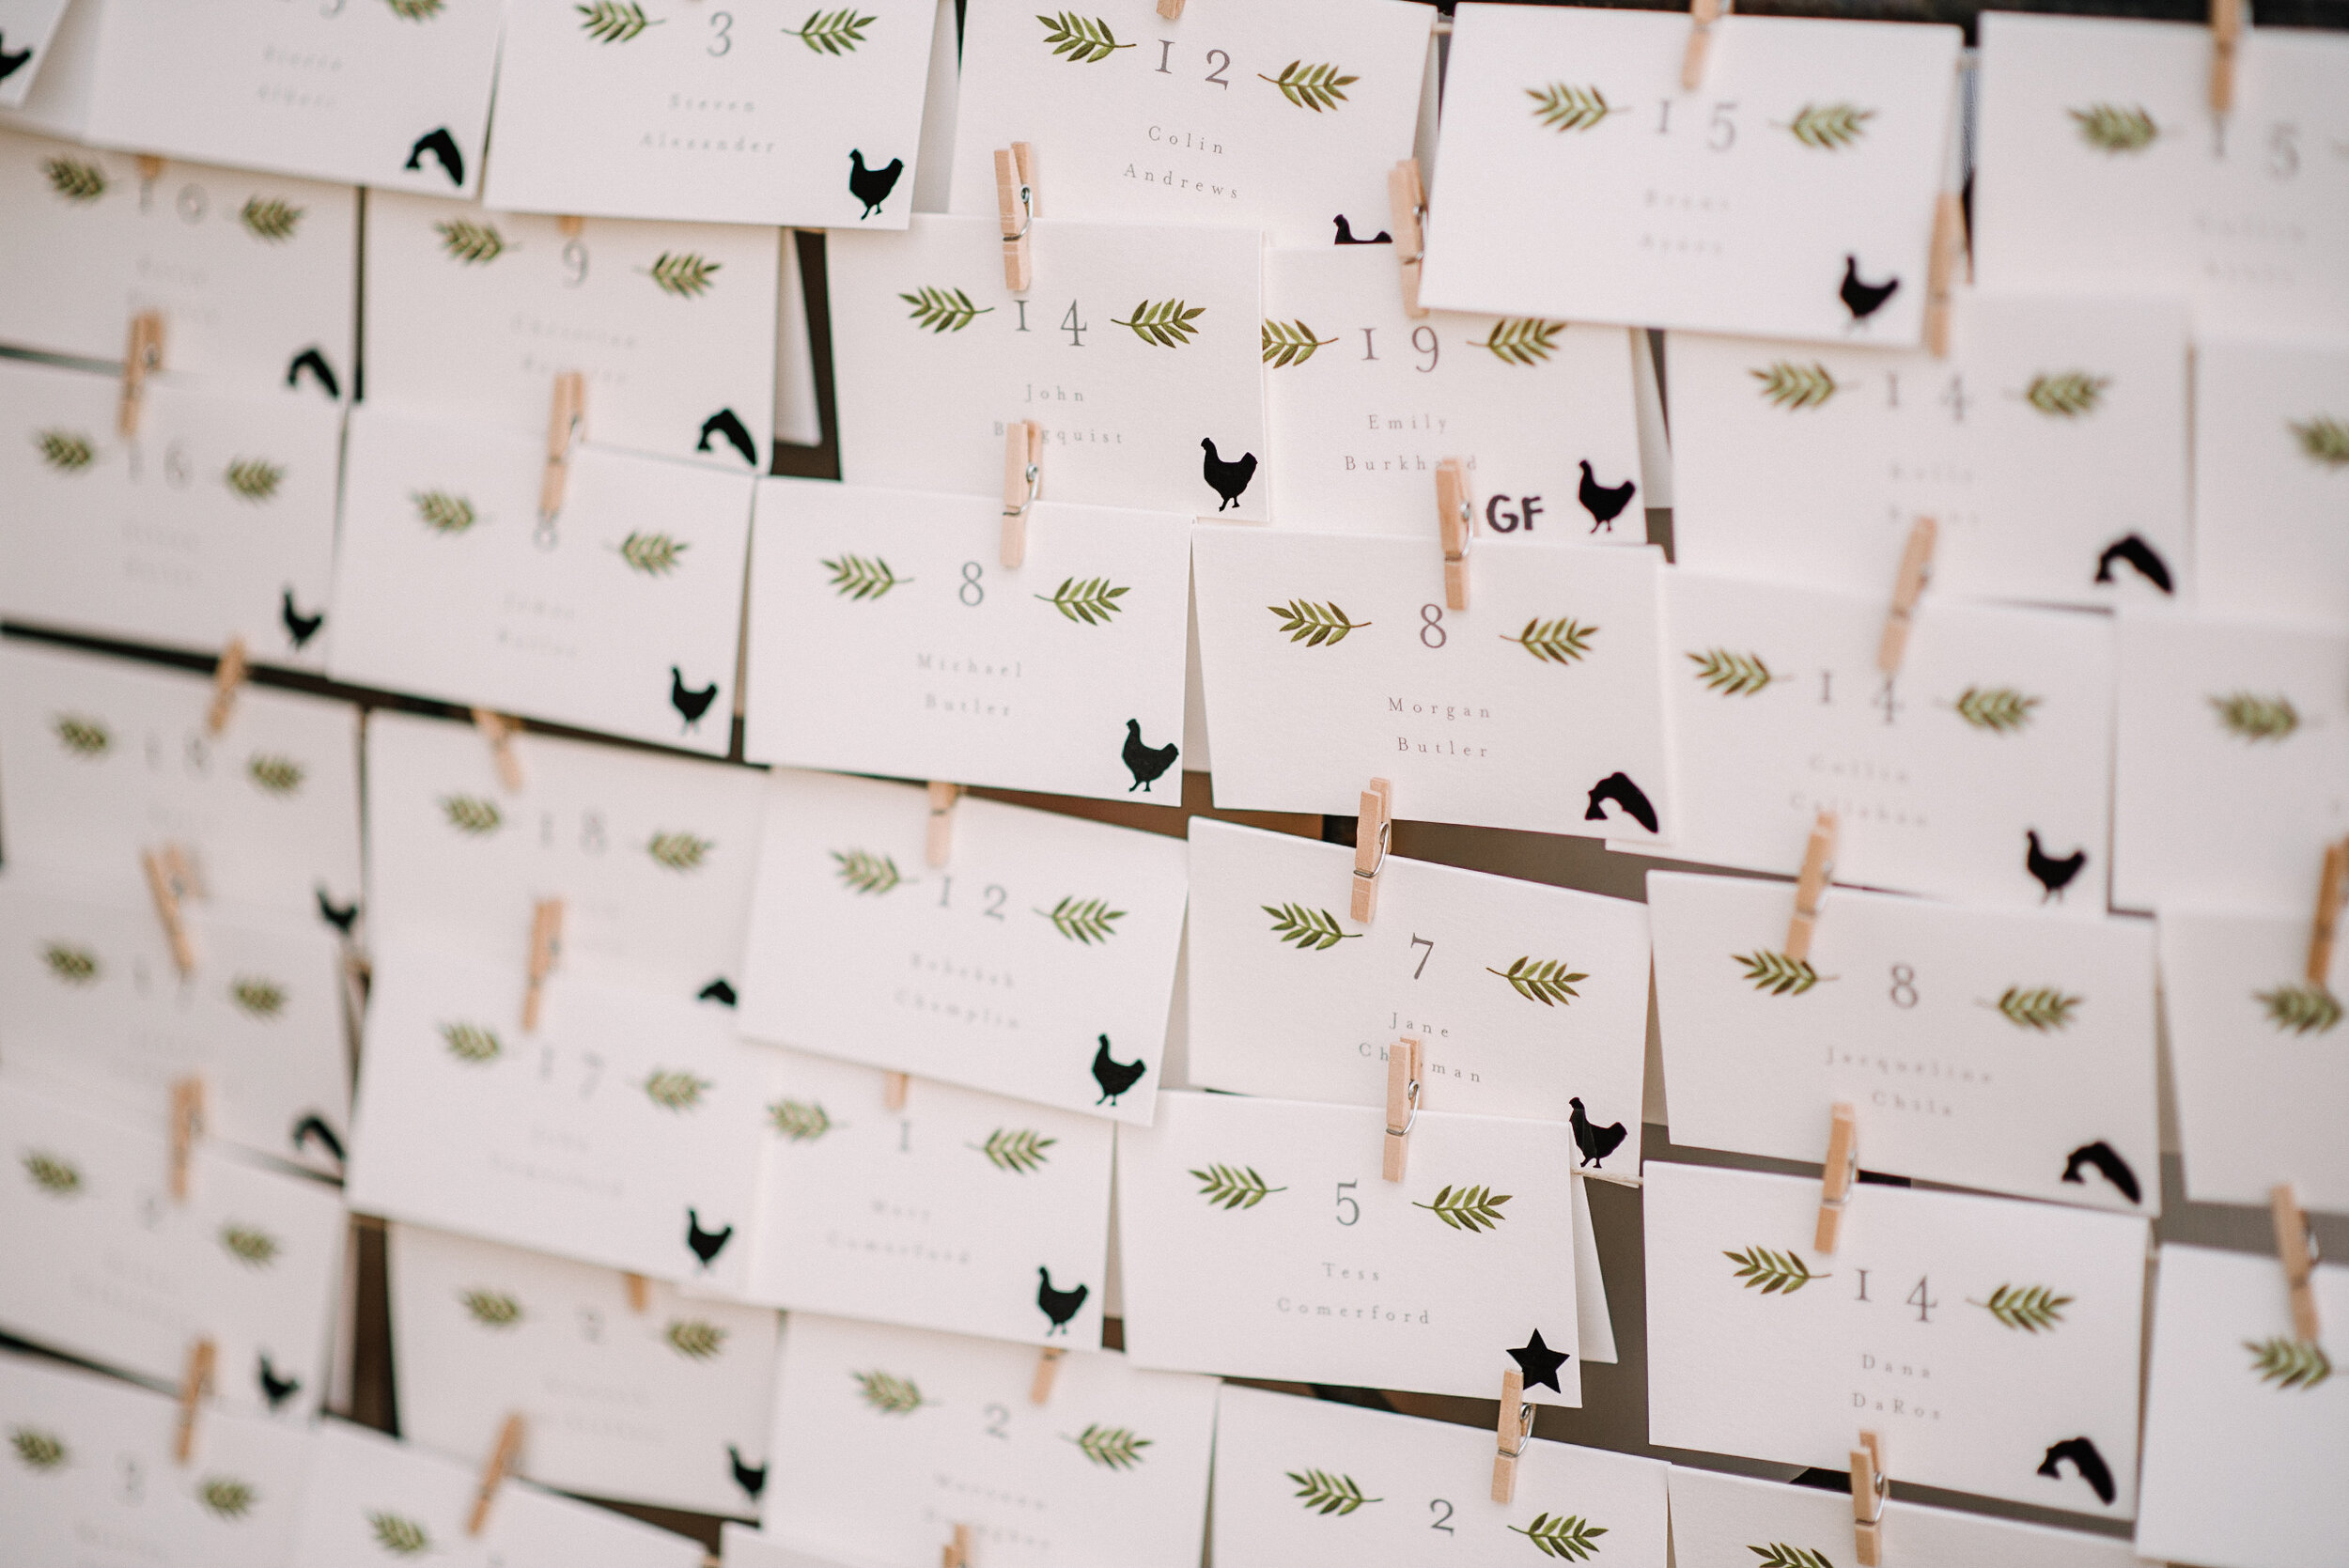 Reception details at Birkby House